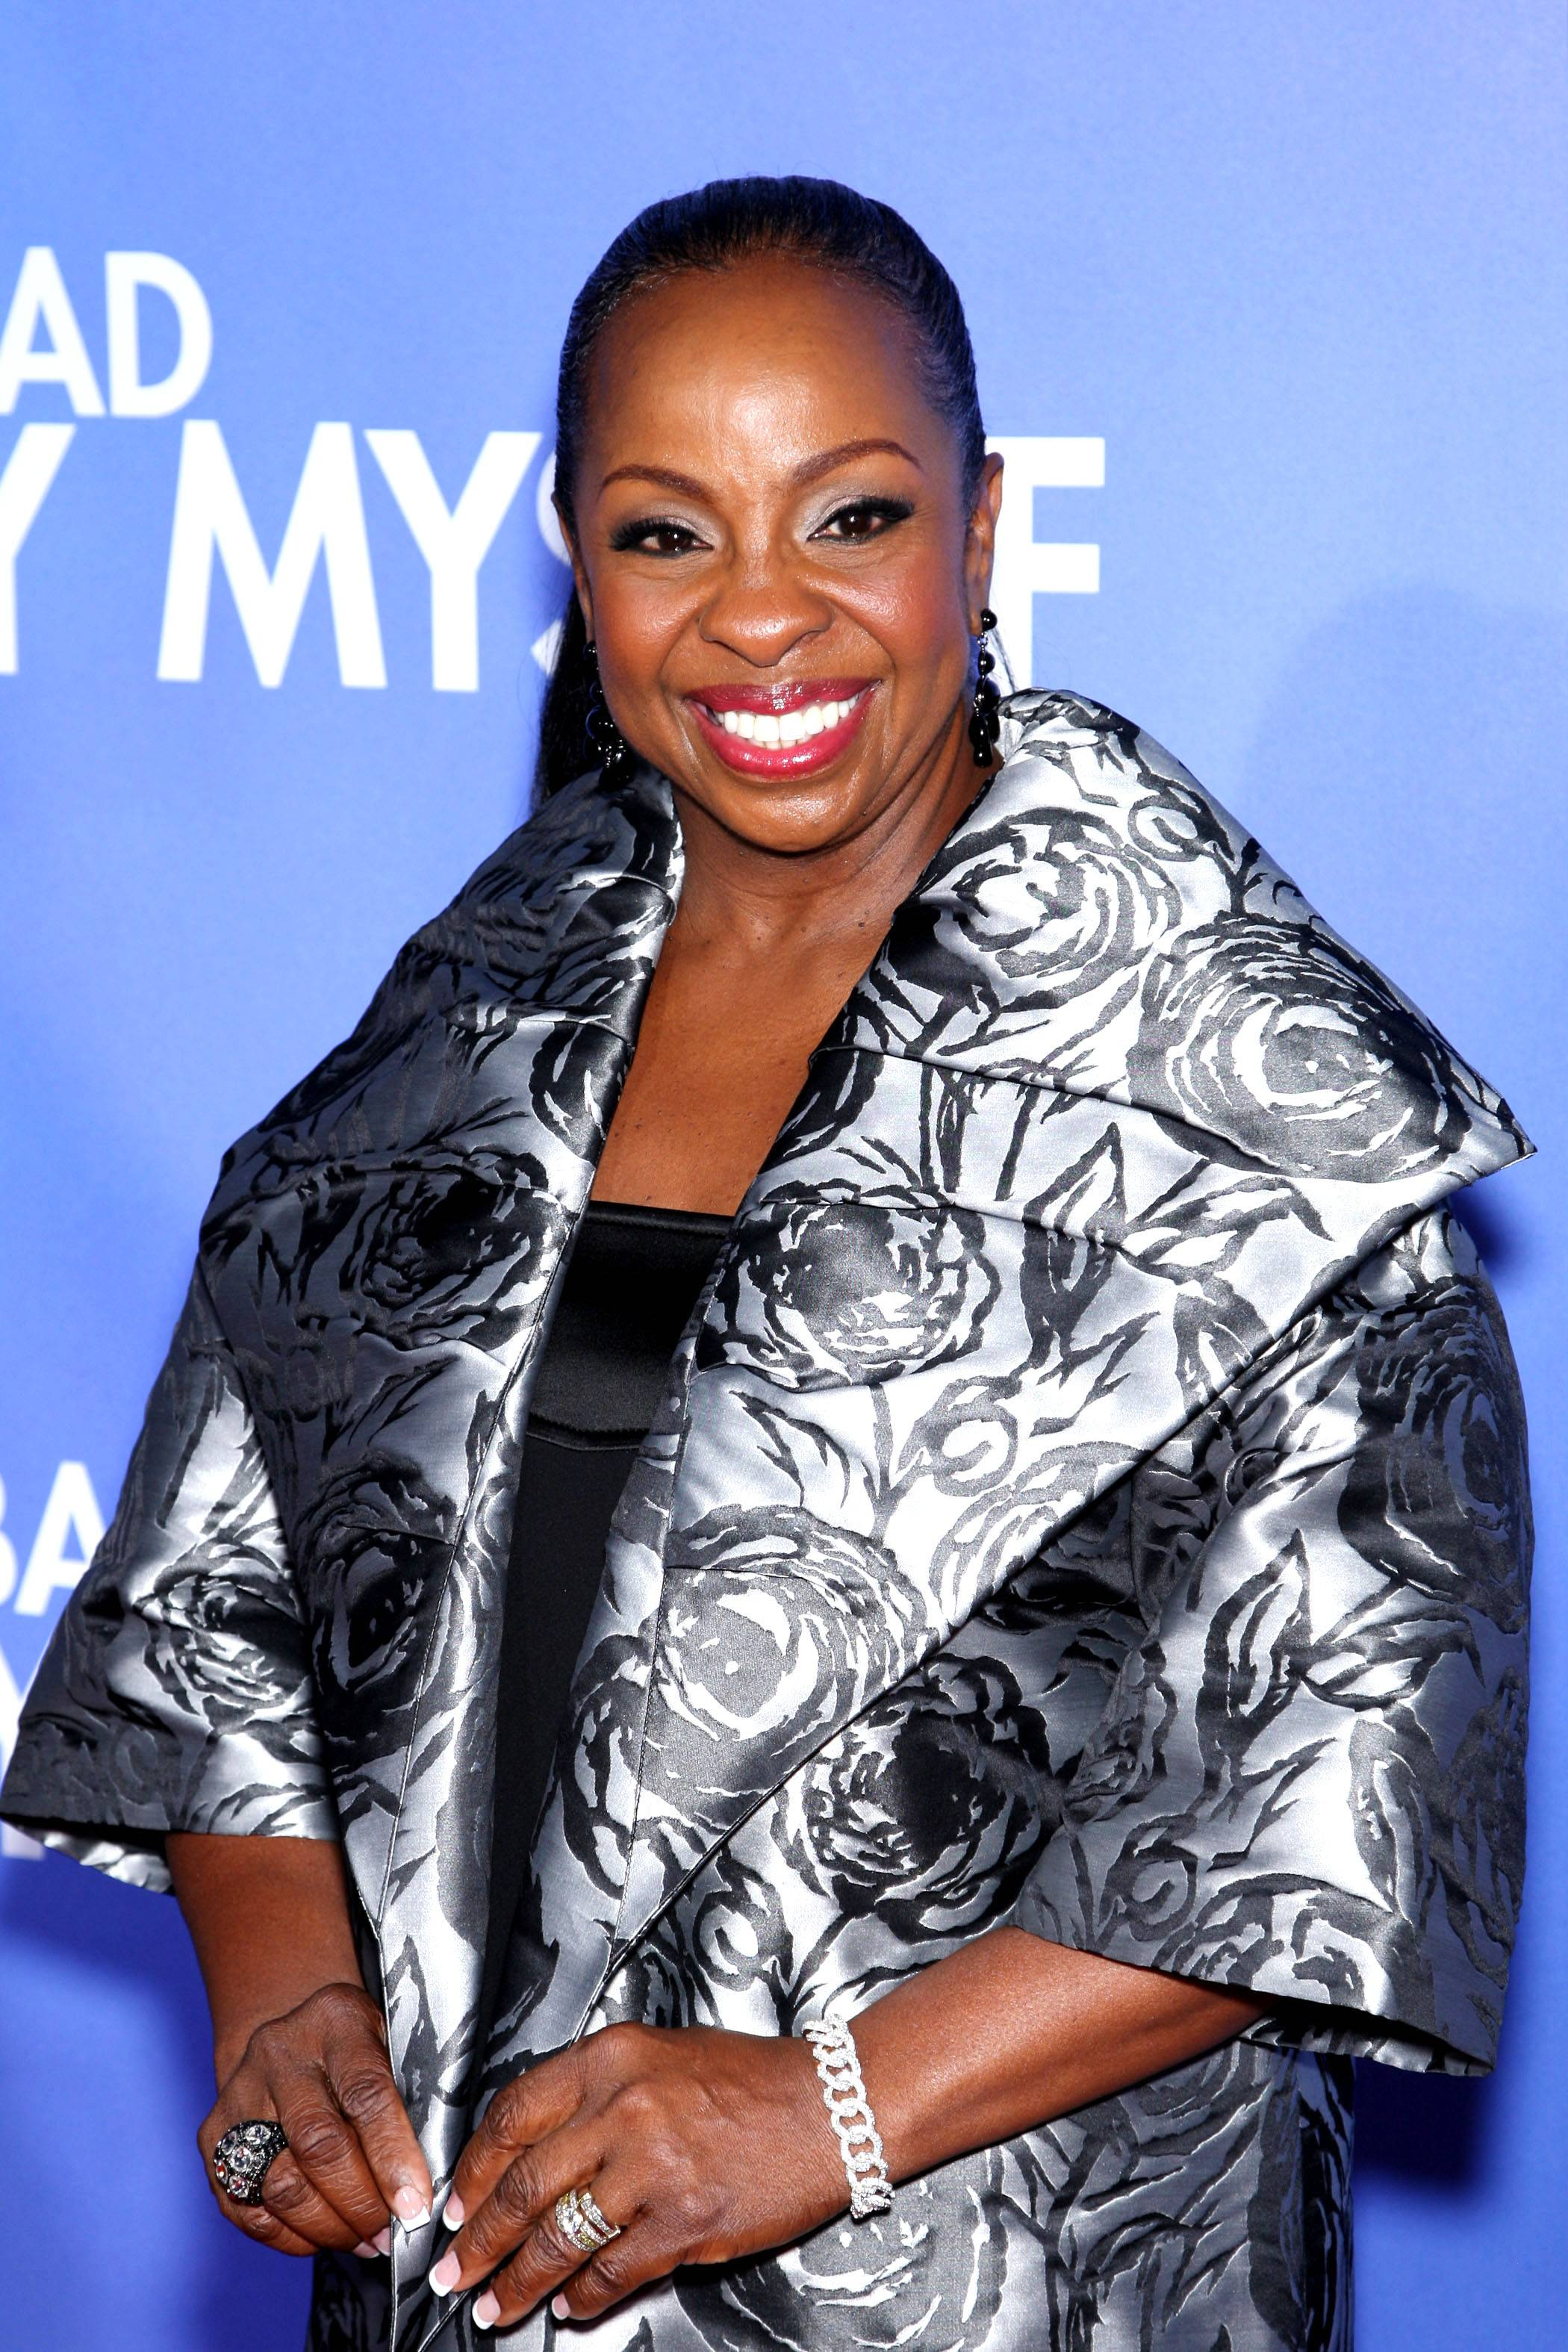 Gladys Knight - Future R&B legend Gladys Knight won the Original Amateur Hour television show contest  in 1952 when she was just 7 years old. The following year The Pips were born, and the rest is history.